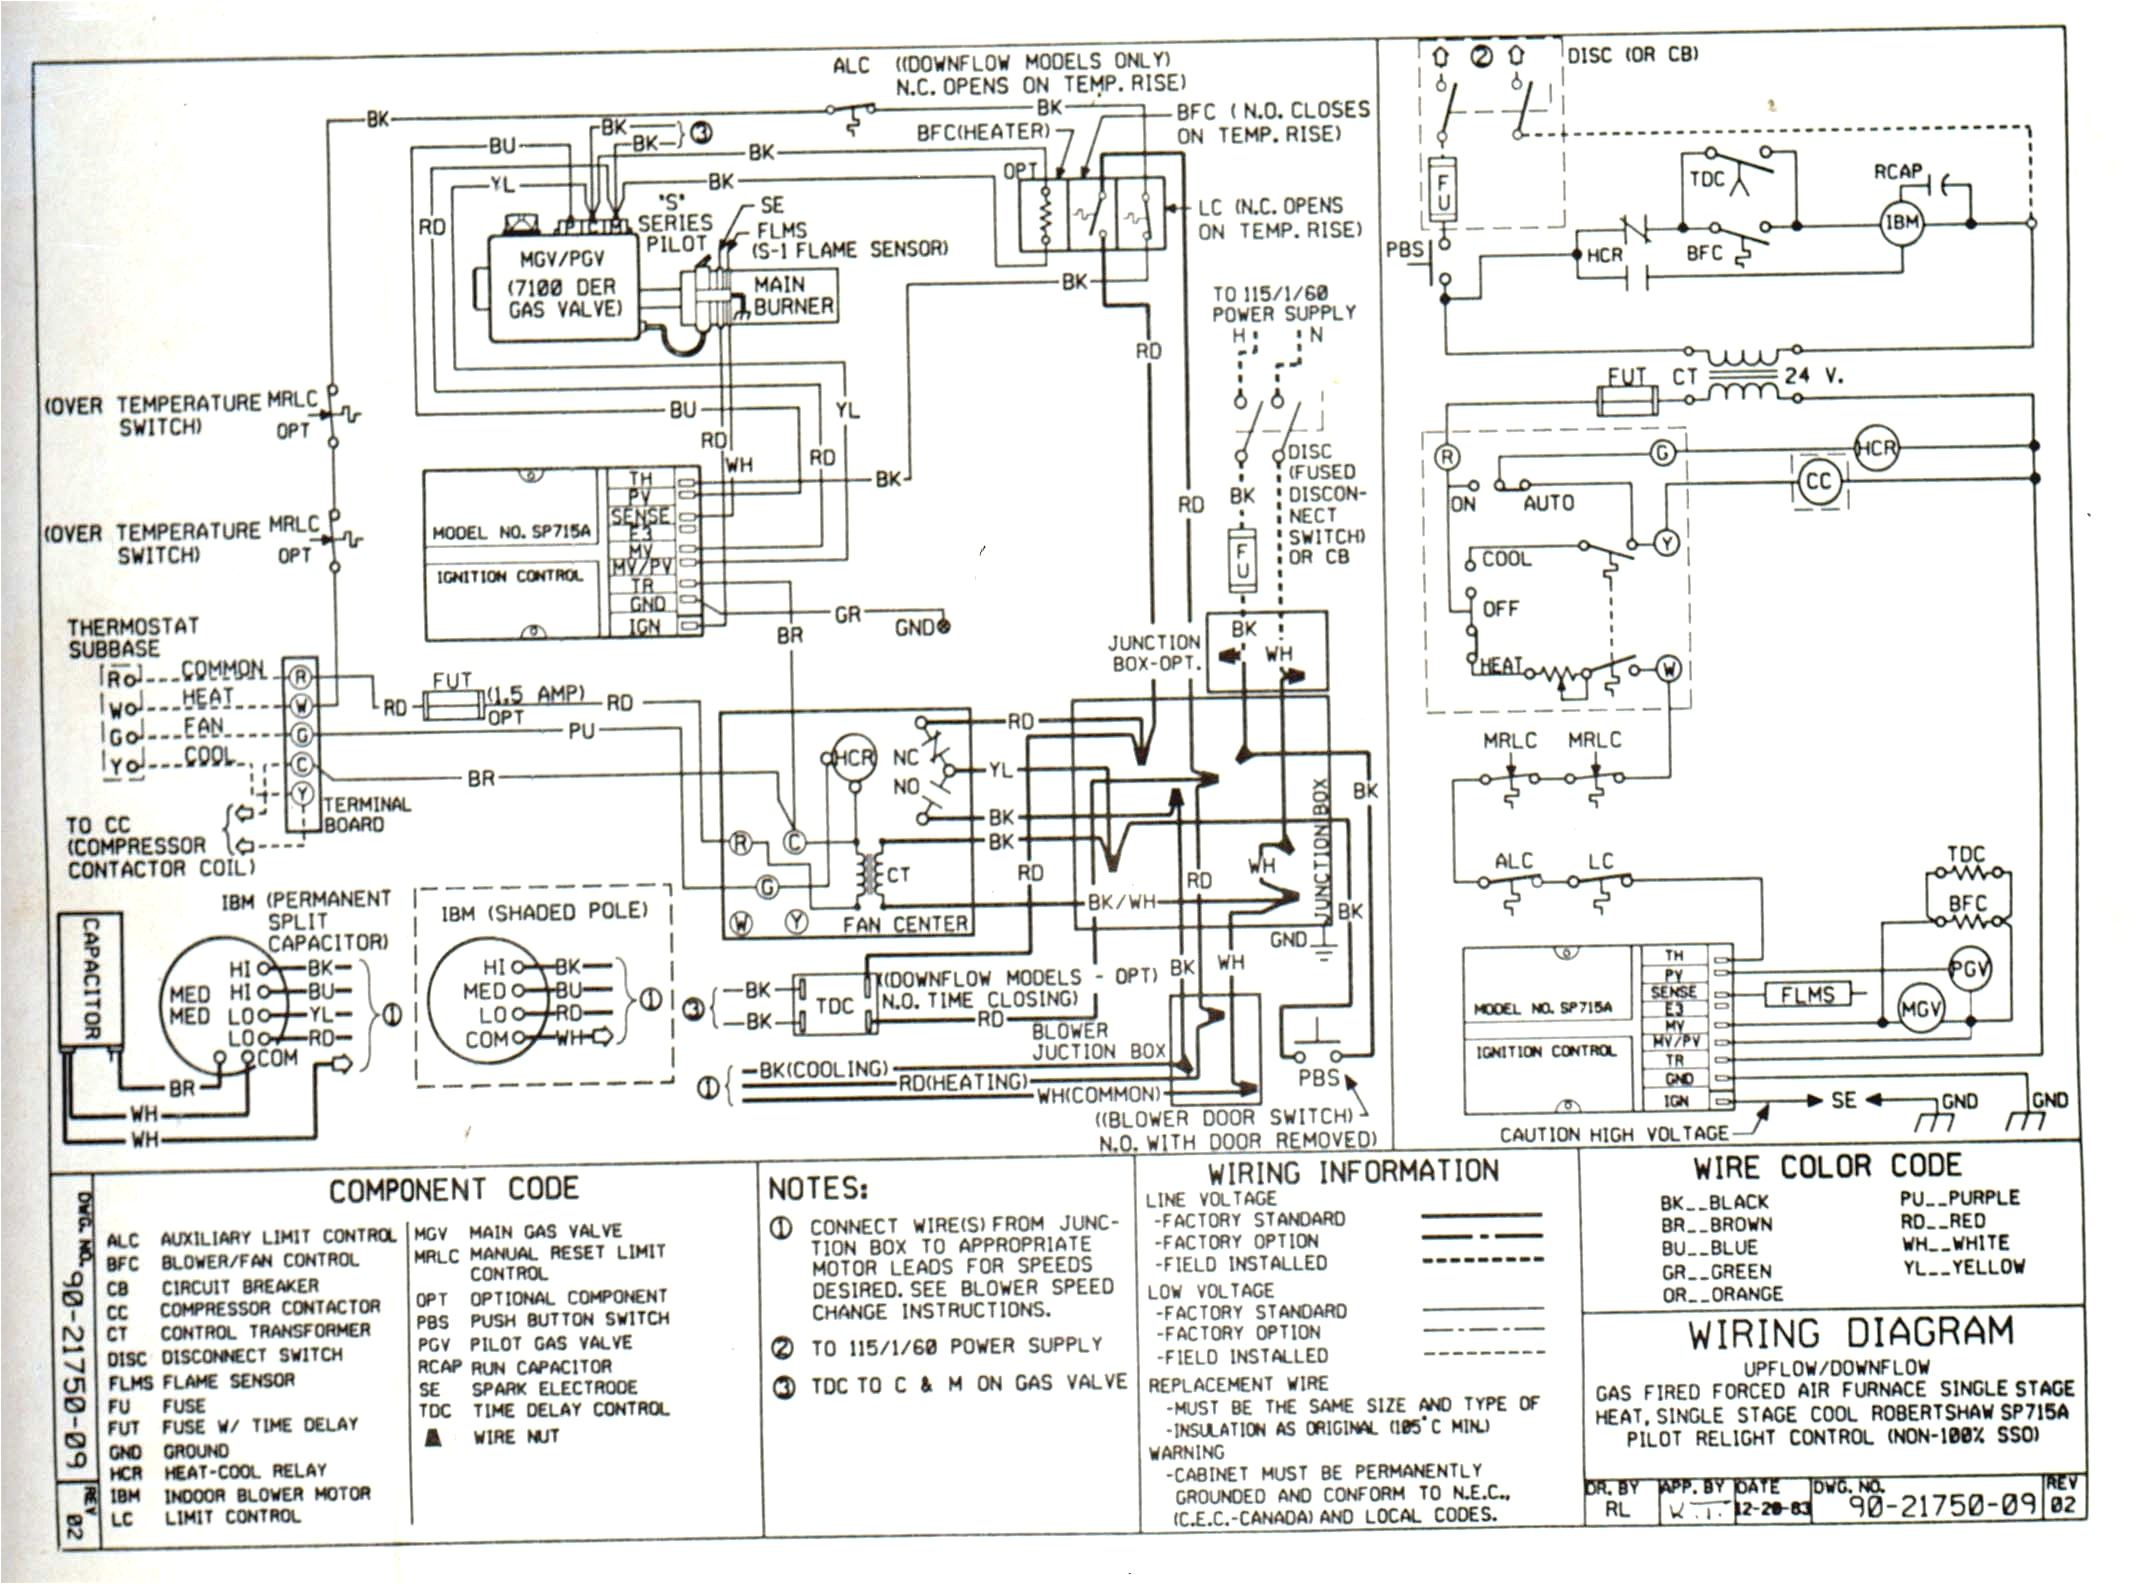 5 wire thermostat wiring diagram lovely honeywell peaksaver thermostat wiring diagram fresh honeywell